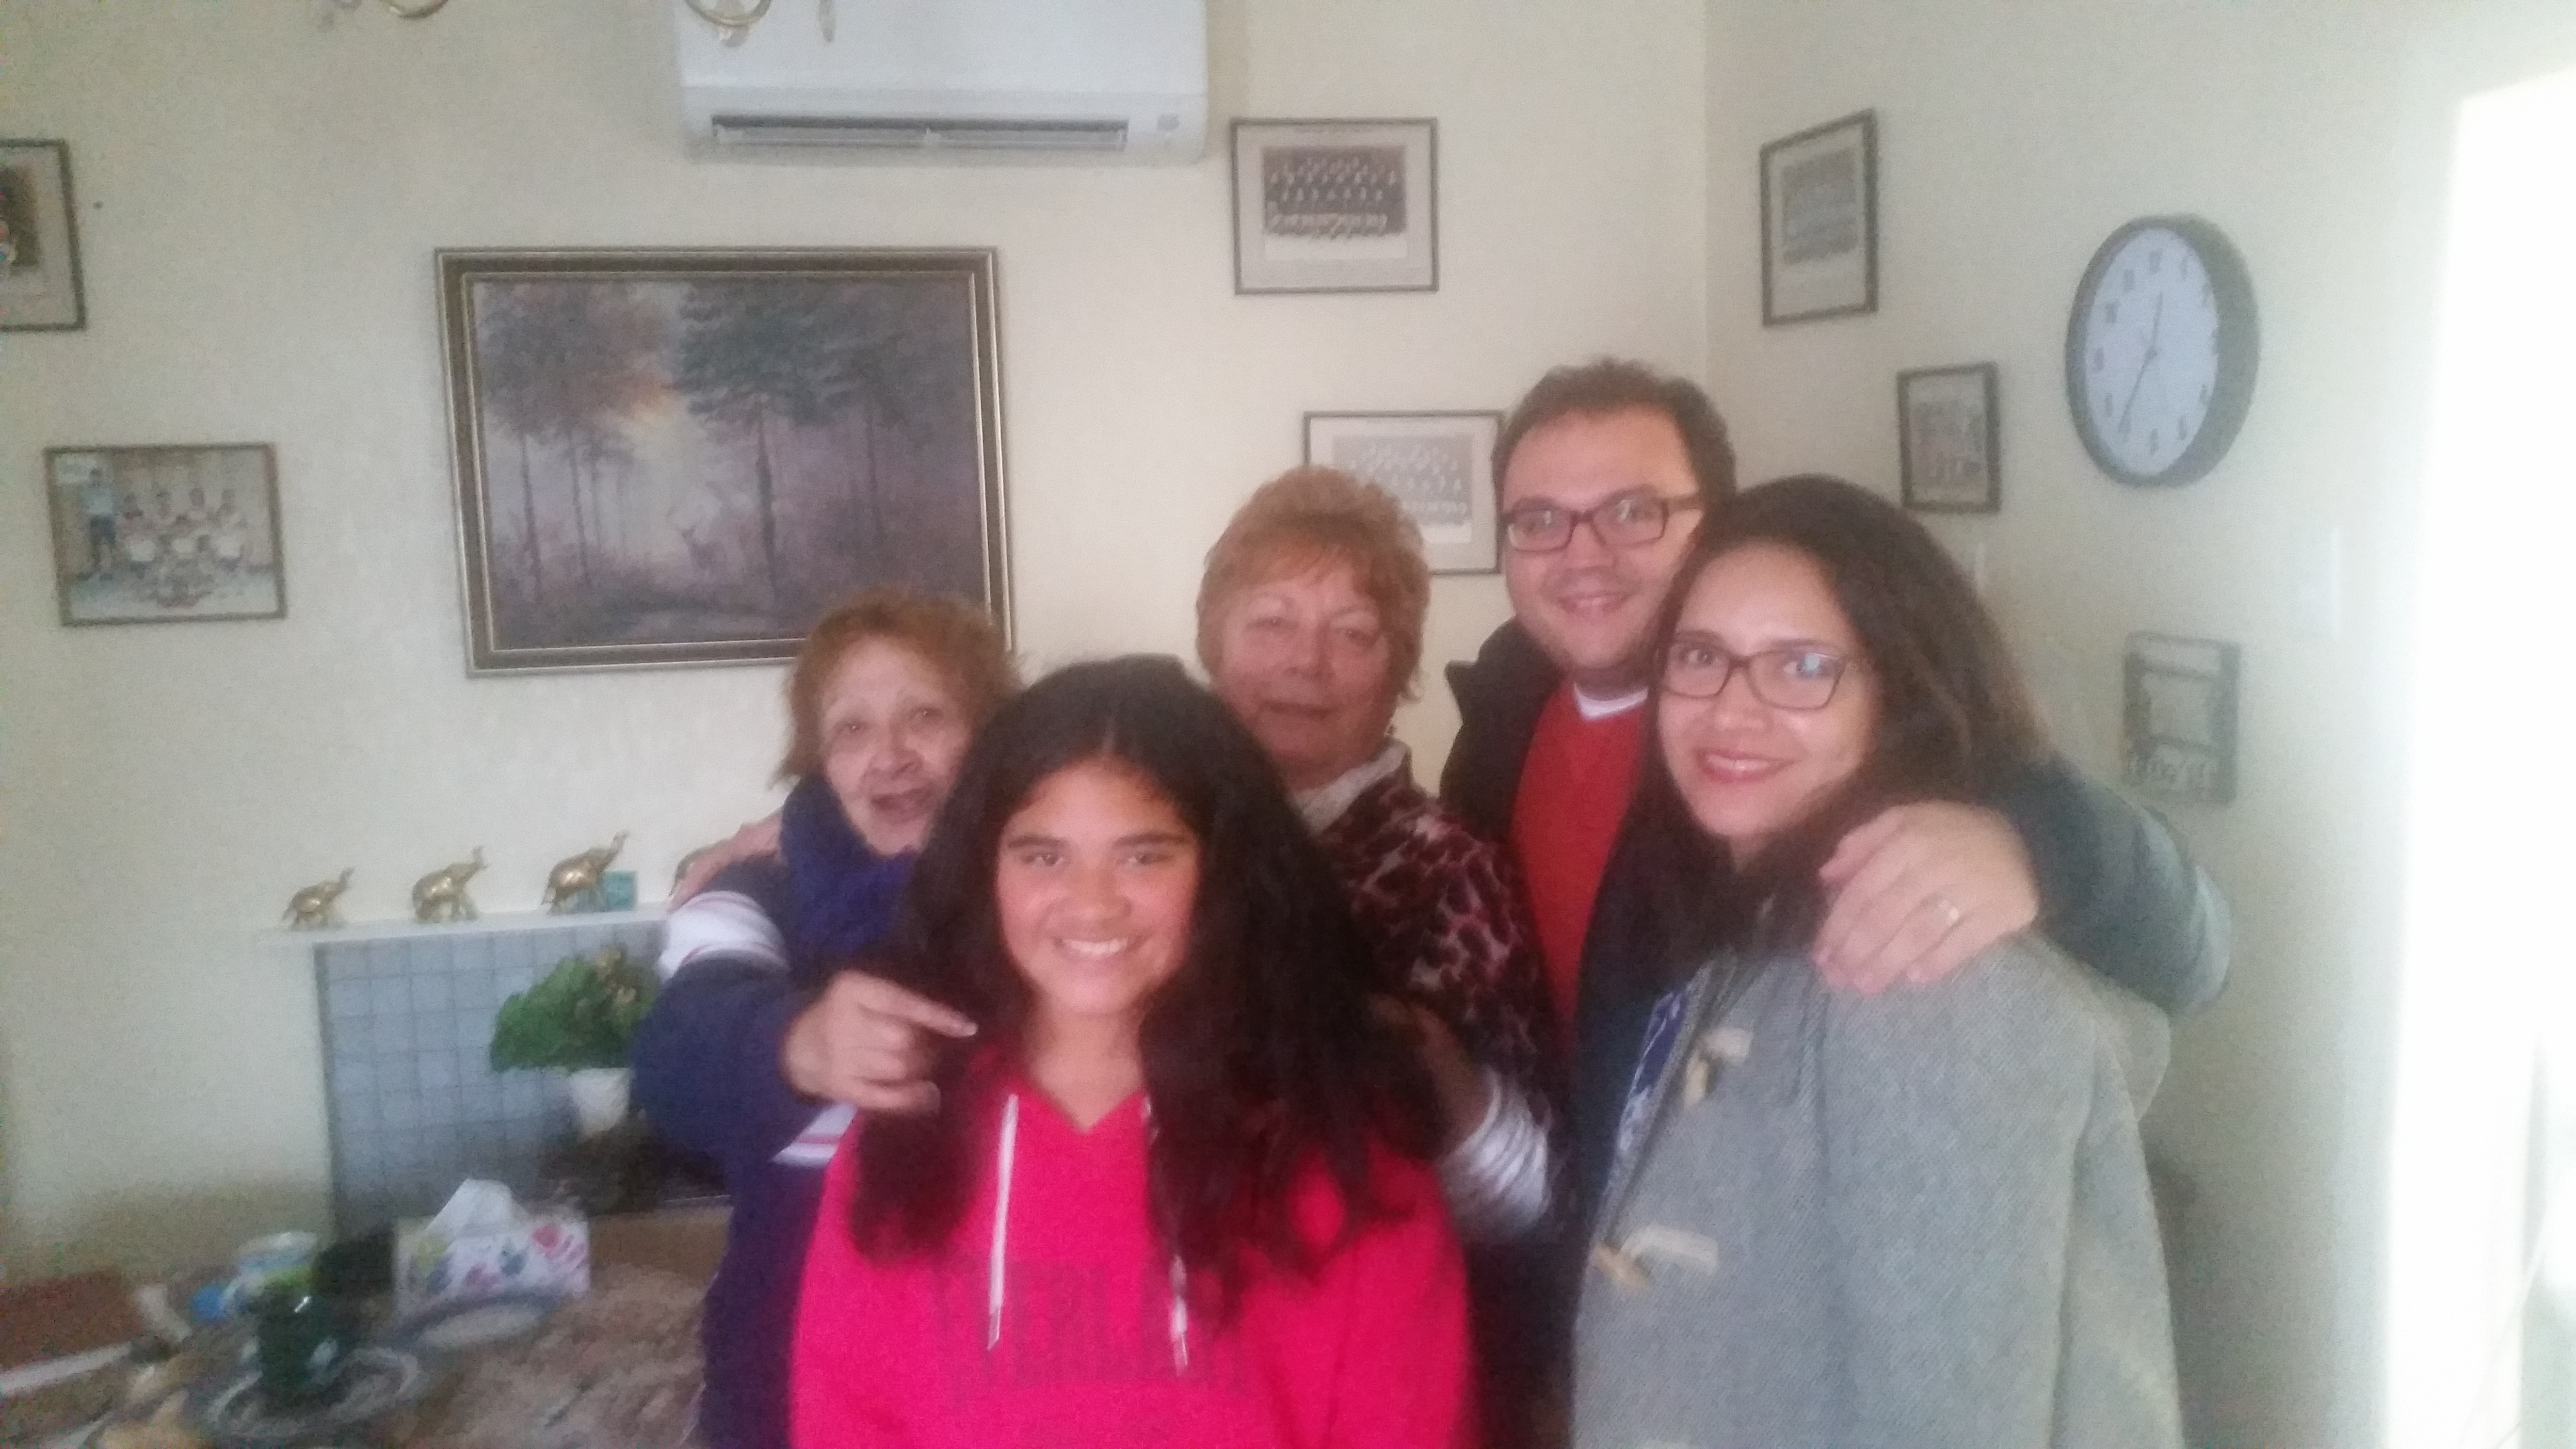 Some of the whānau who visited Squirrel.